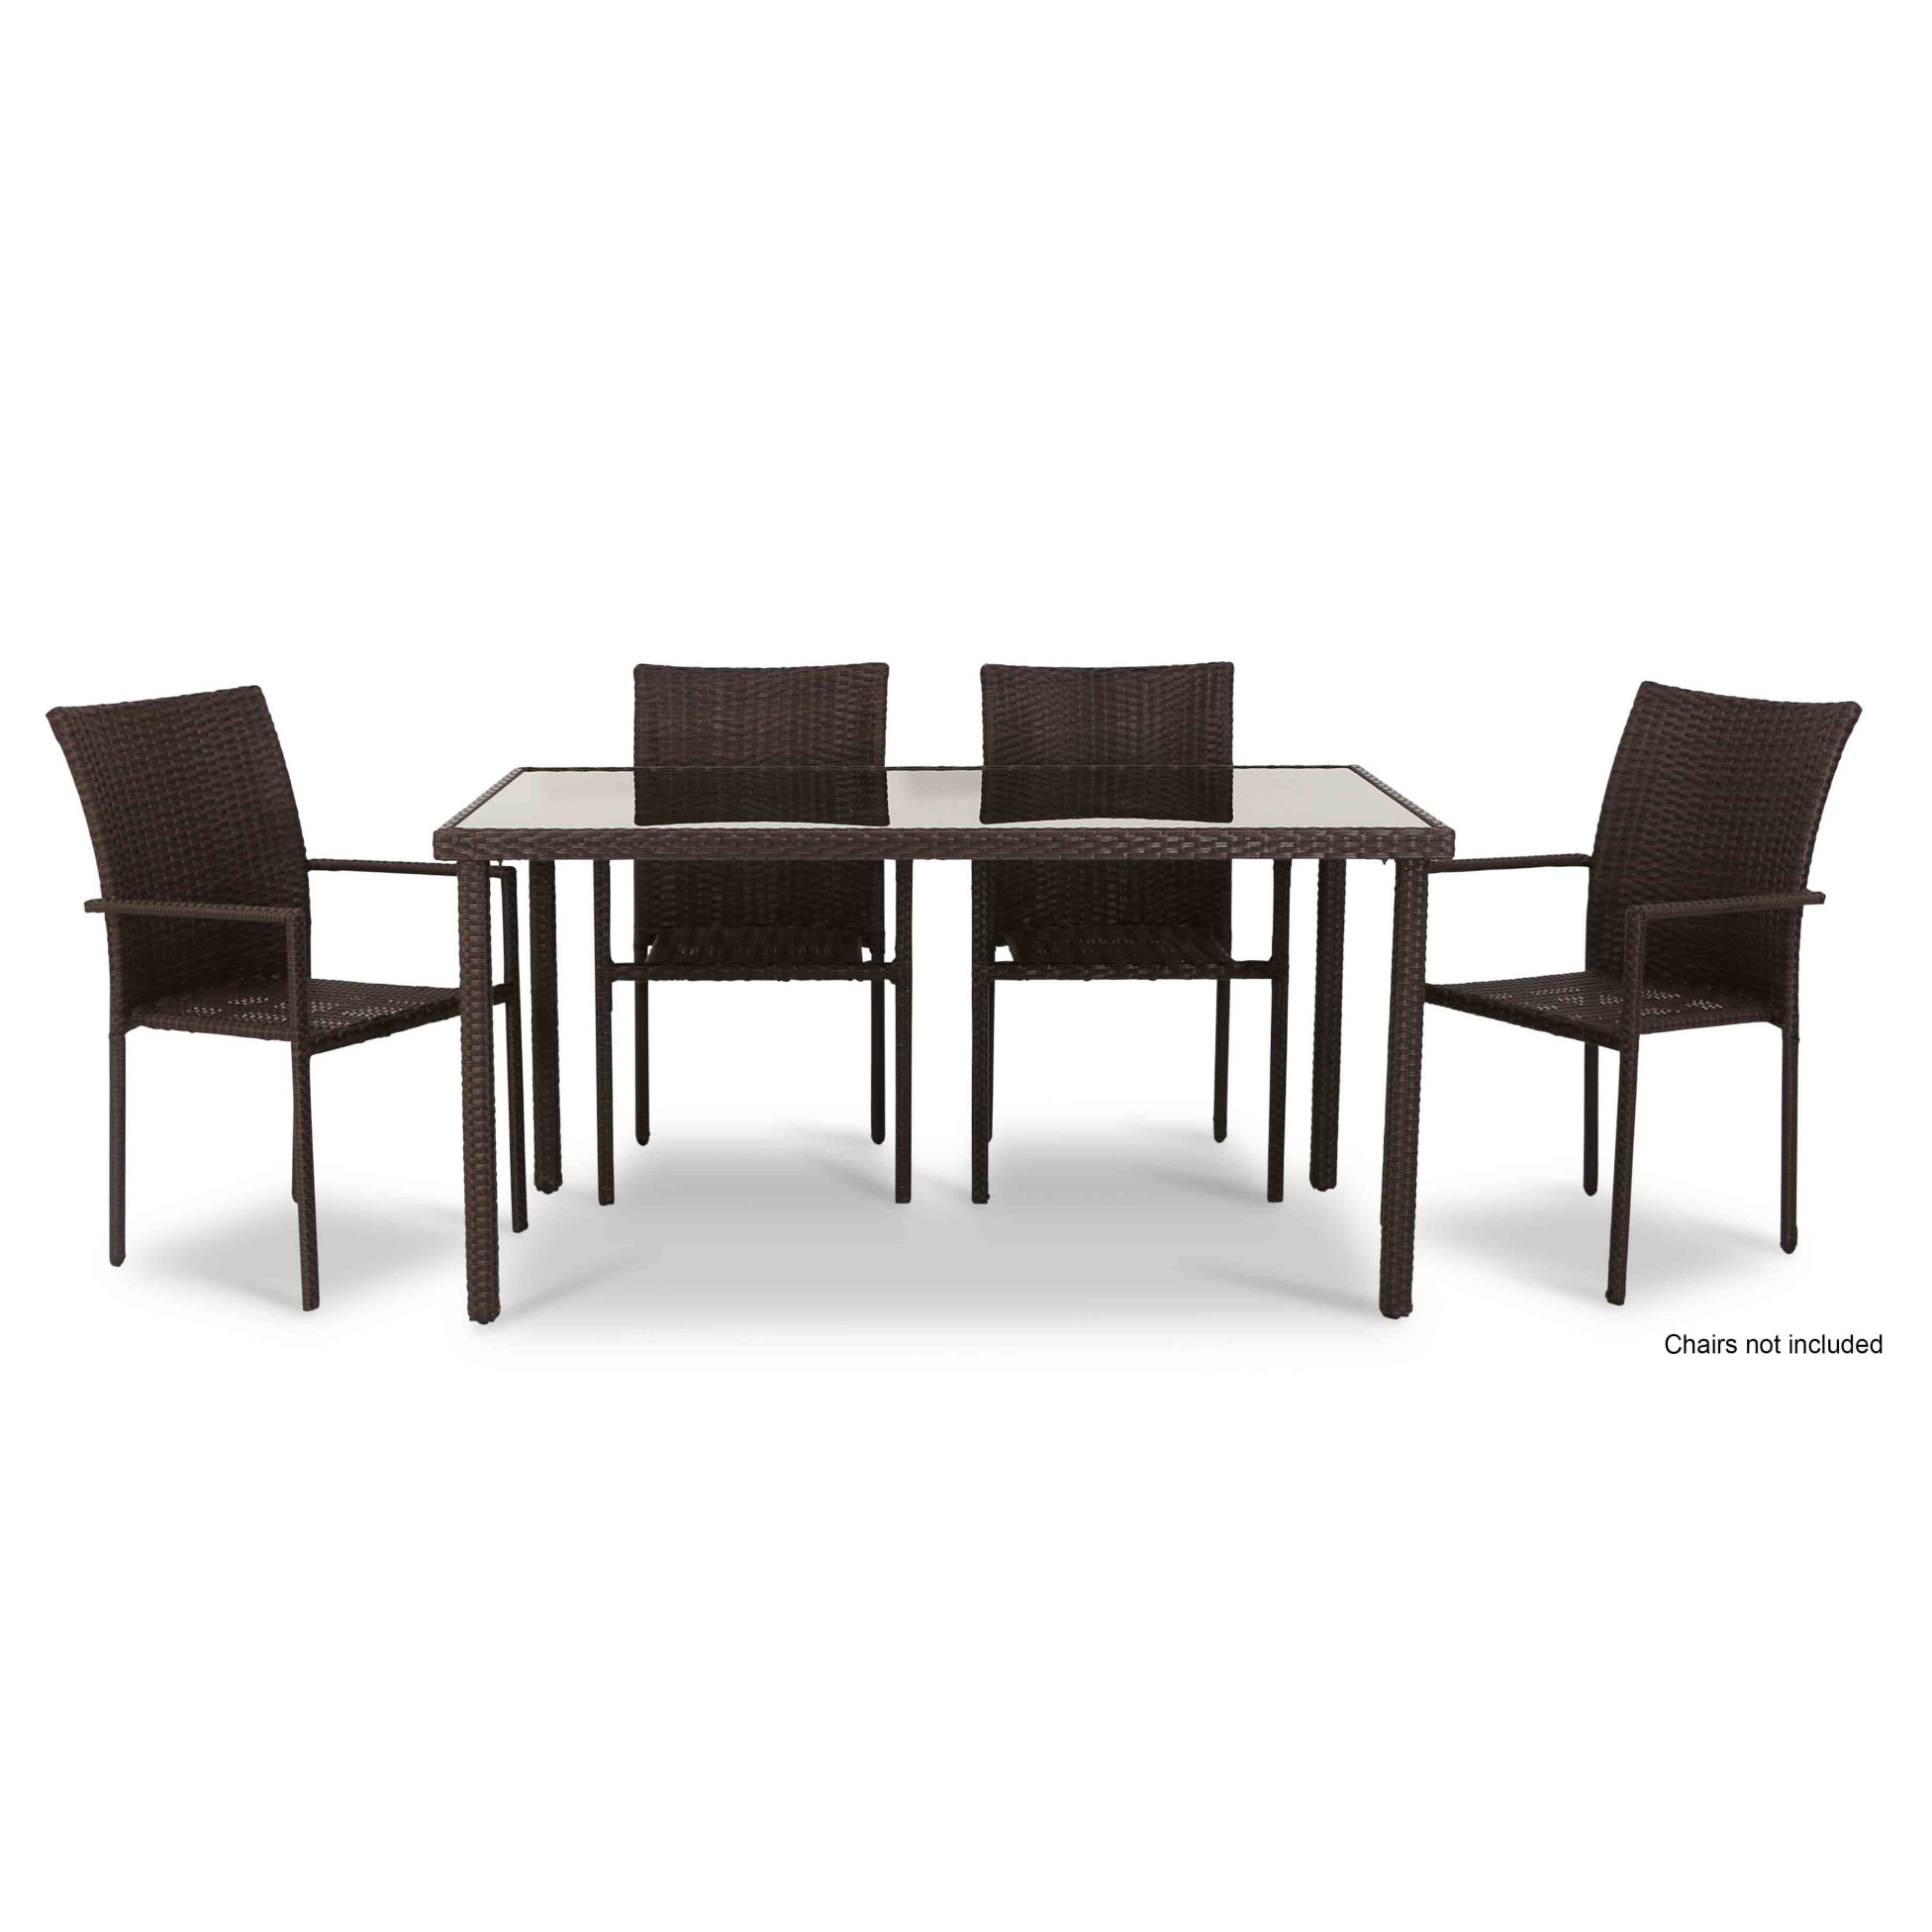 Wakiky outdoor dining table brown furniture home décor